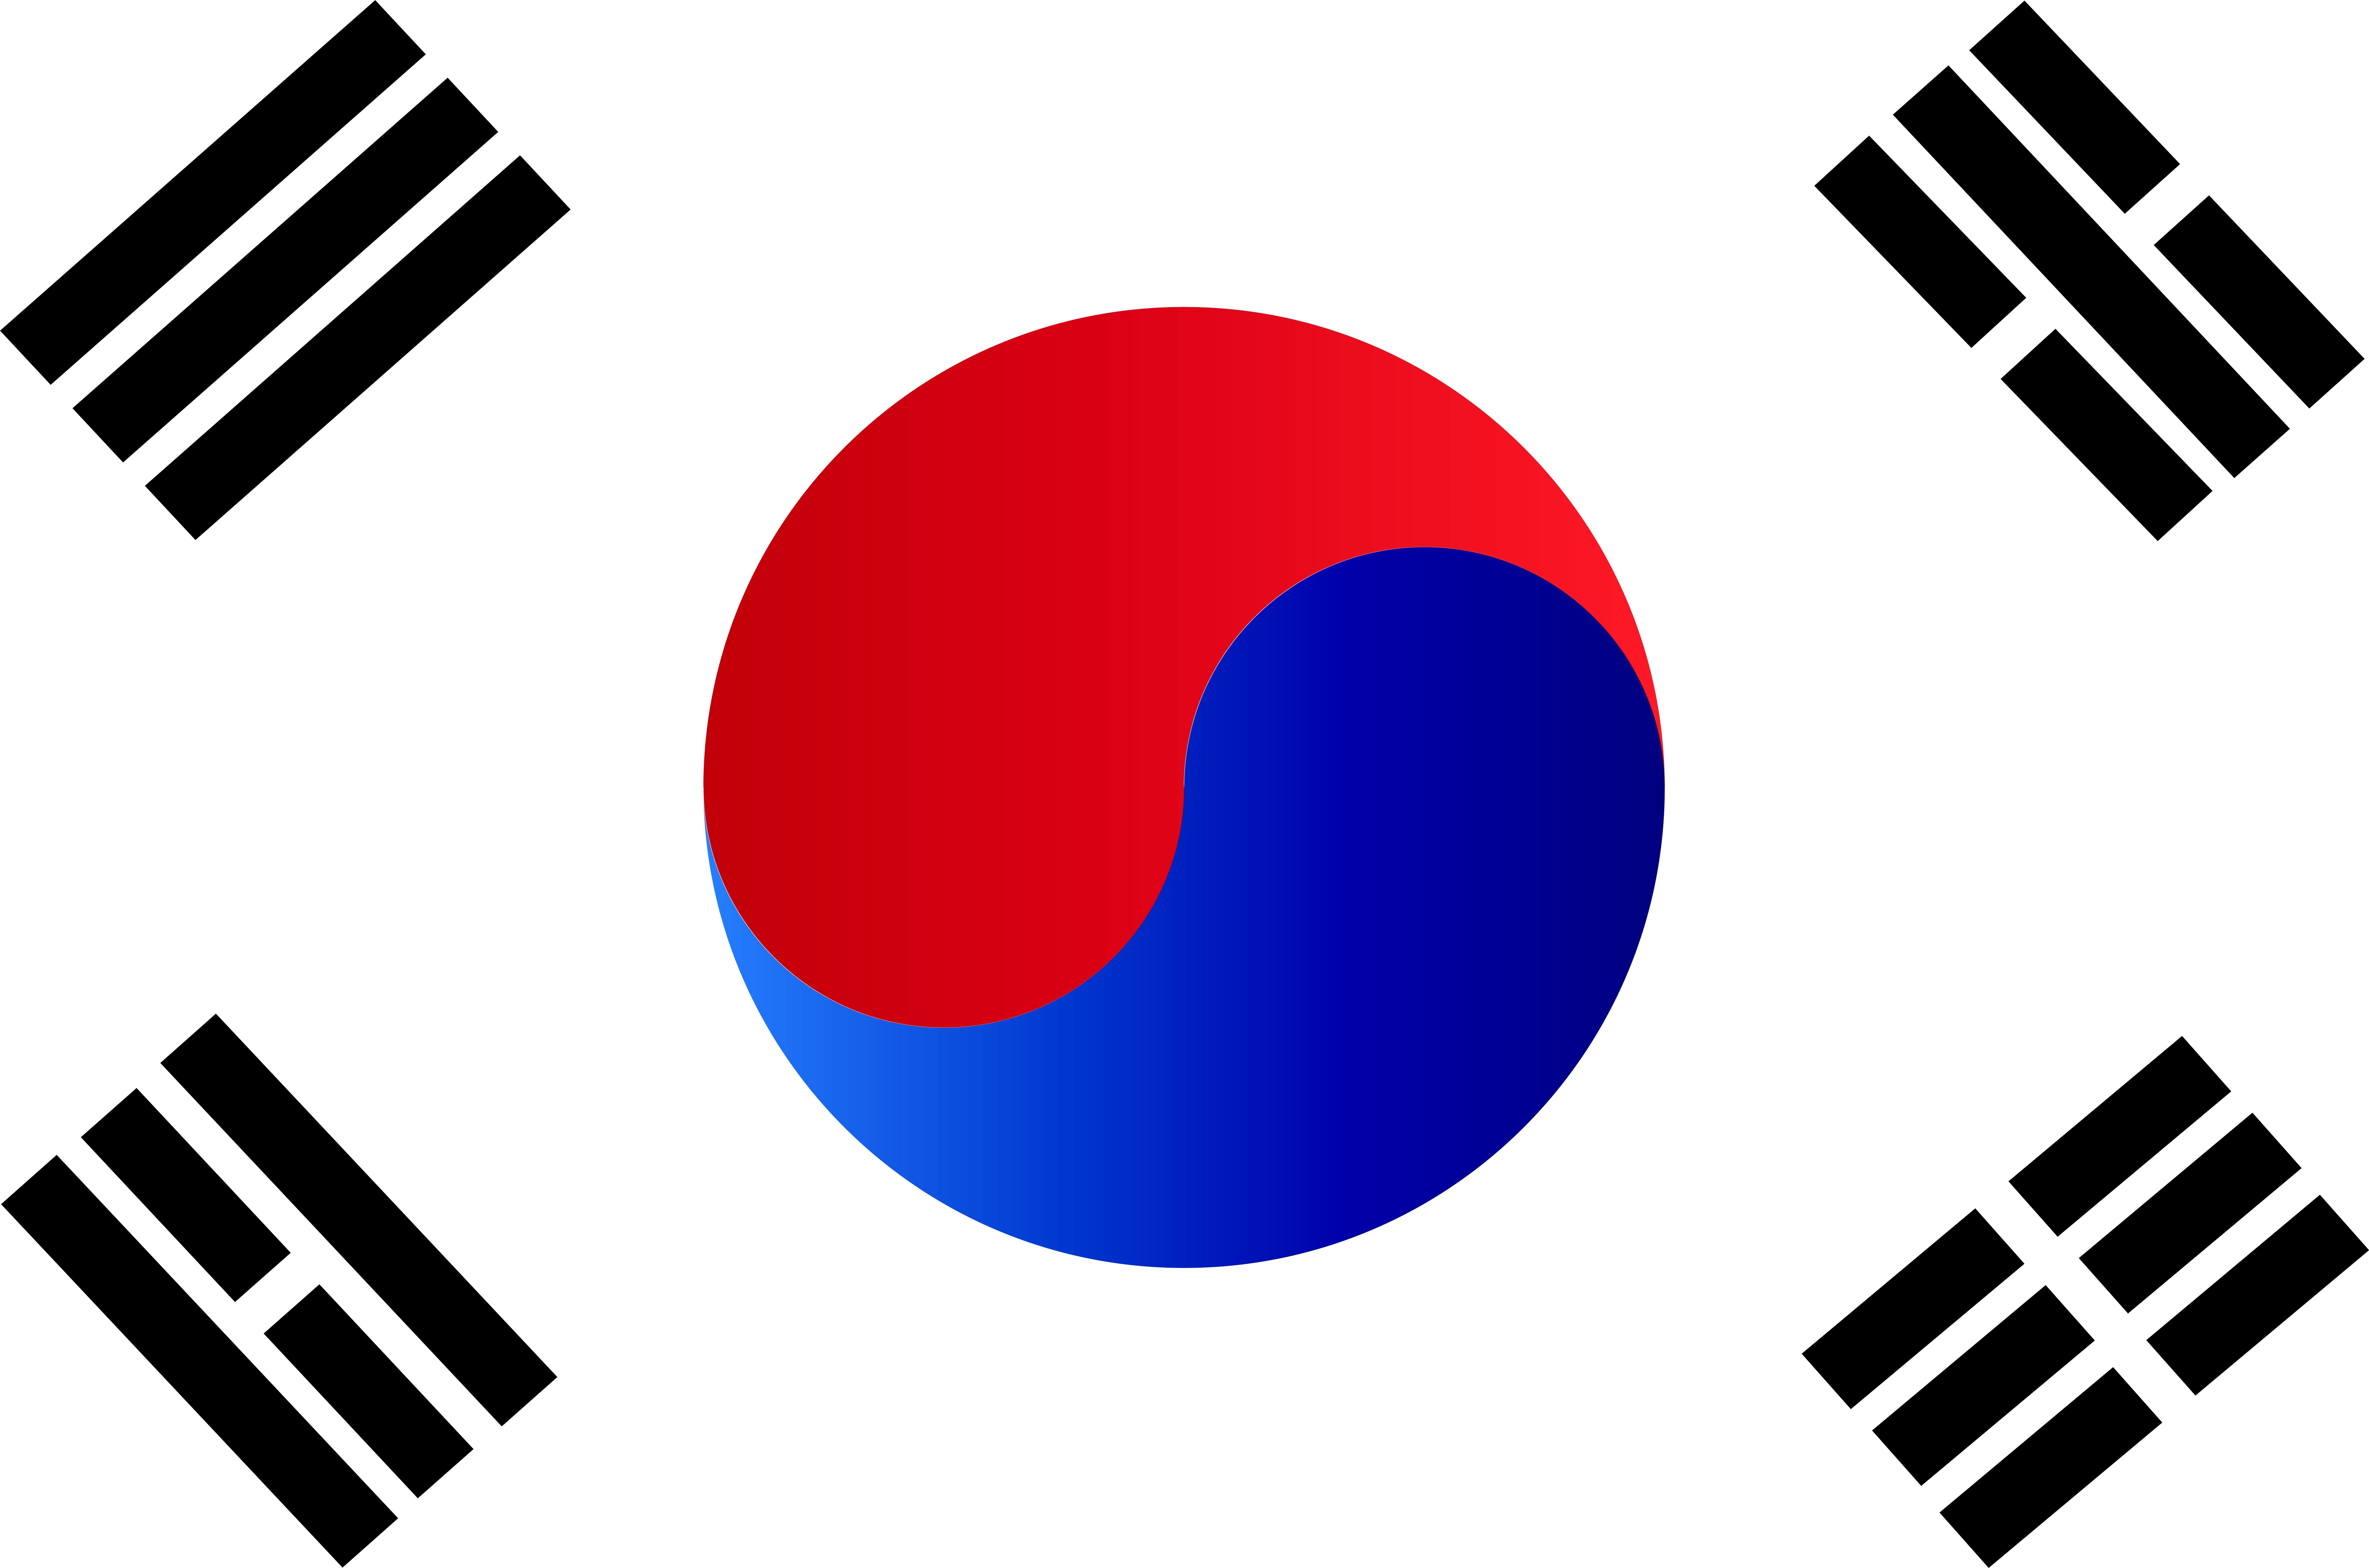 The Flag Of South Korea Also Known As The Taegukgi Has Three Parts A White Rectangular Background A Red And Blue T South Korea Flag South Korea Korean Flag